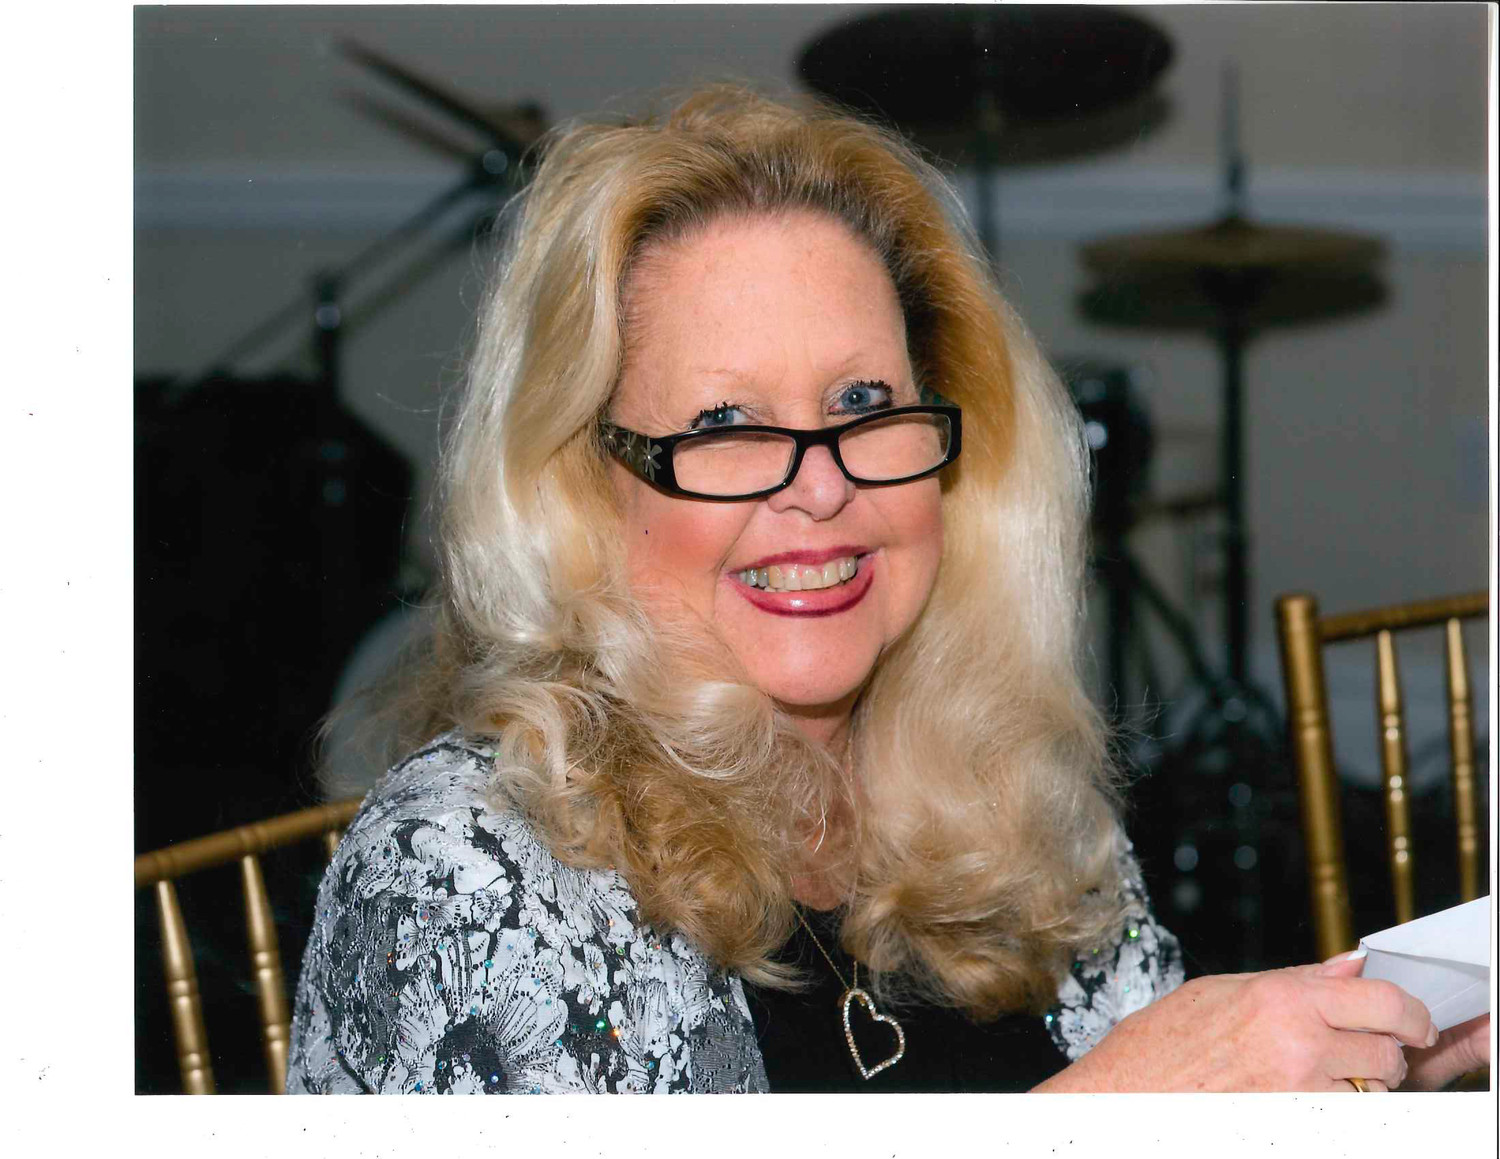 Maureen Mercogliano died suddenly of cancer on Dec. 27. She worked with the Freeport Chamber of Commerce for 16 years.